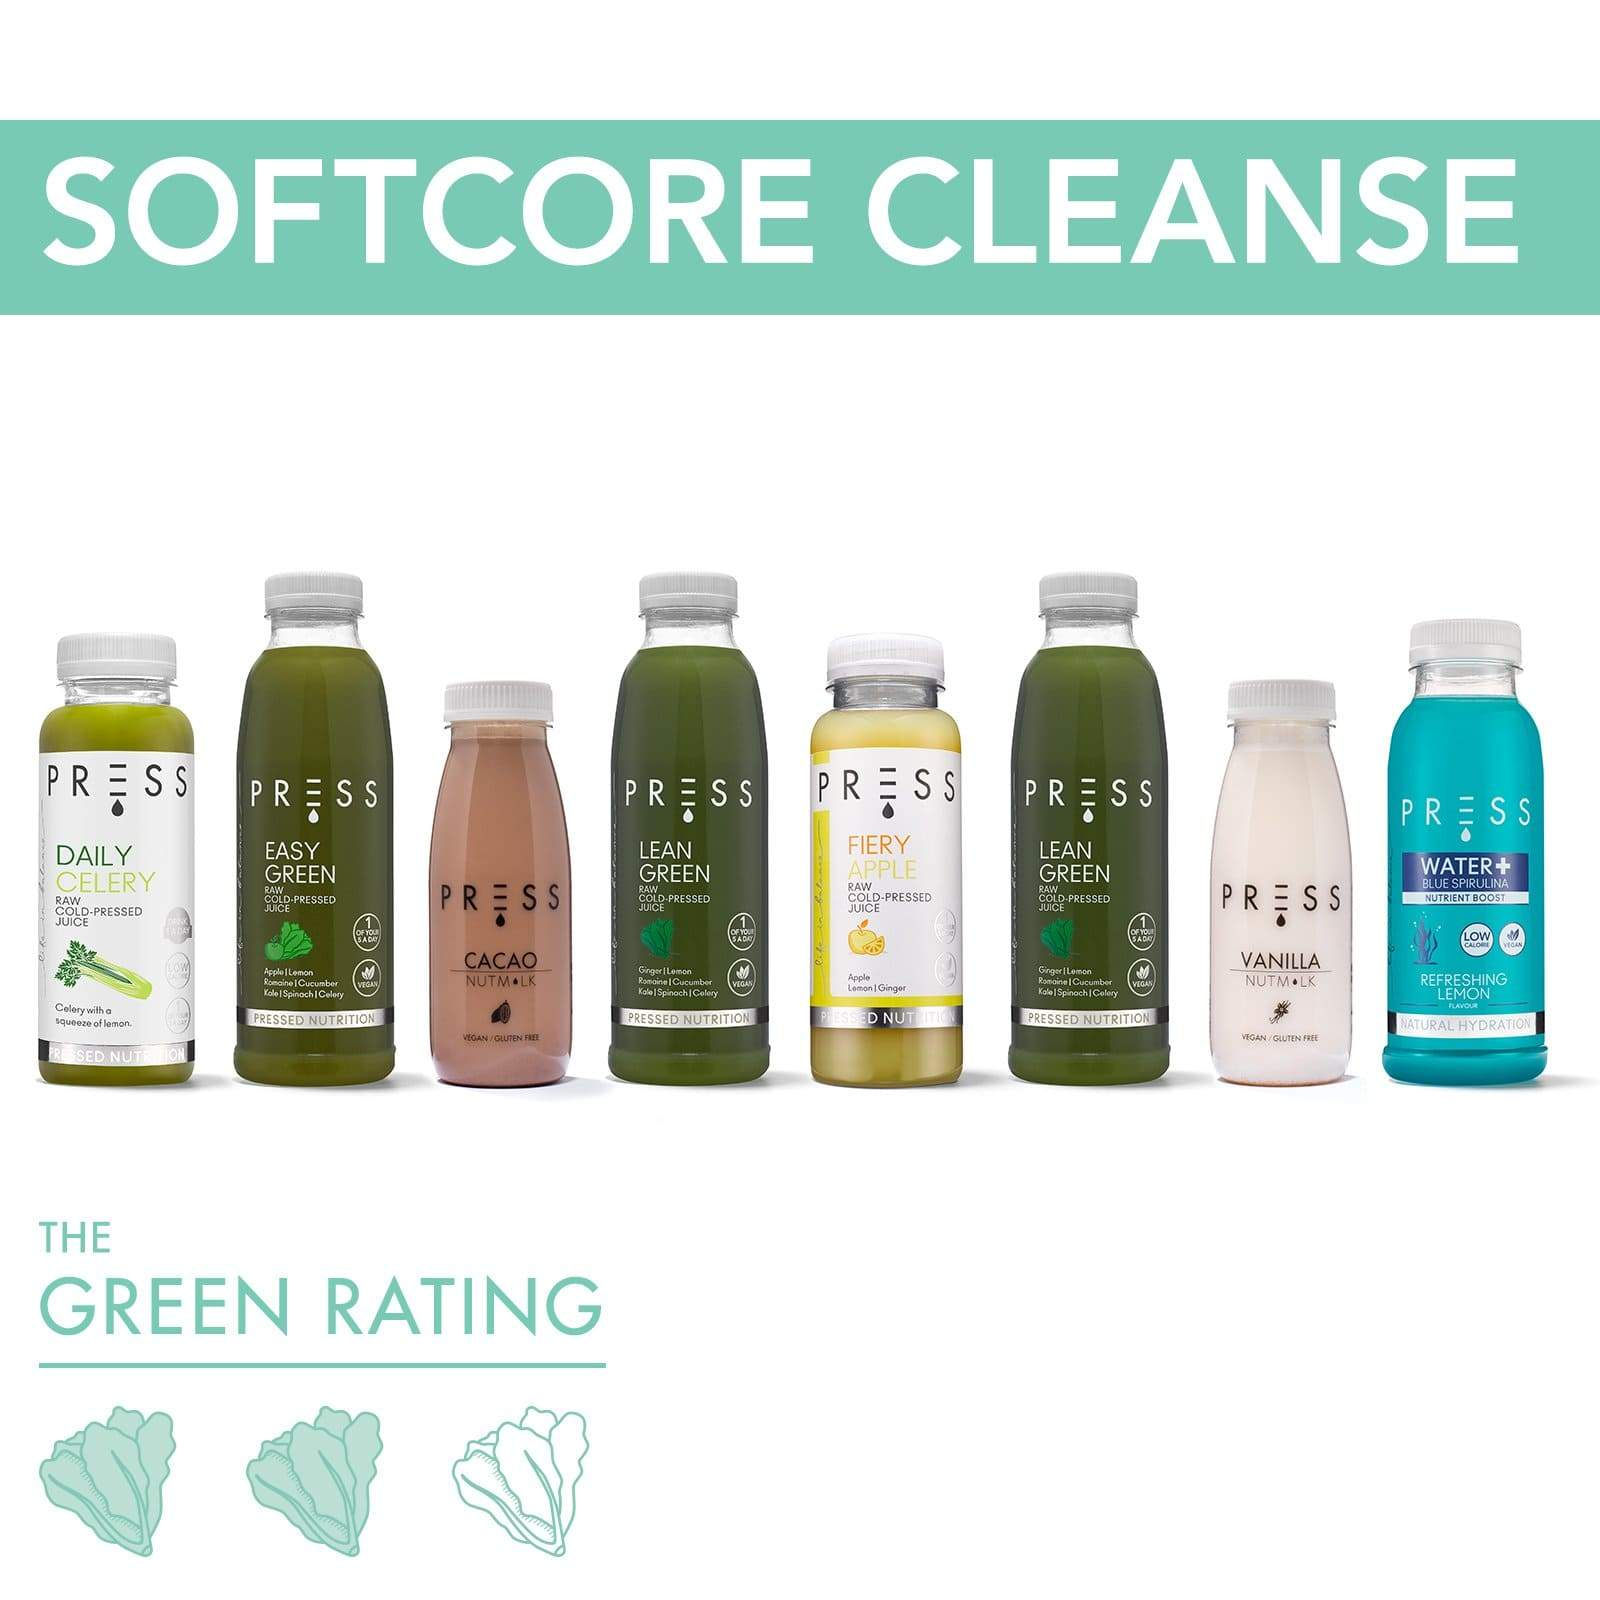 Softcore Juice Cleanse - PRESS London